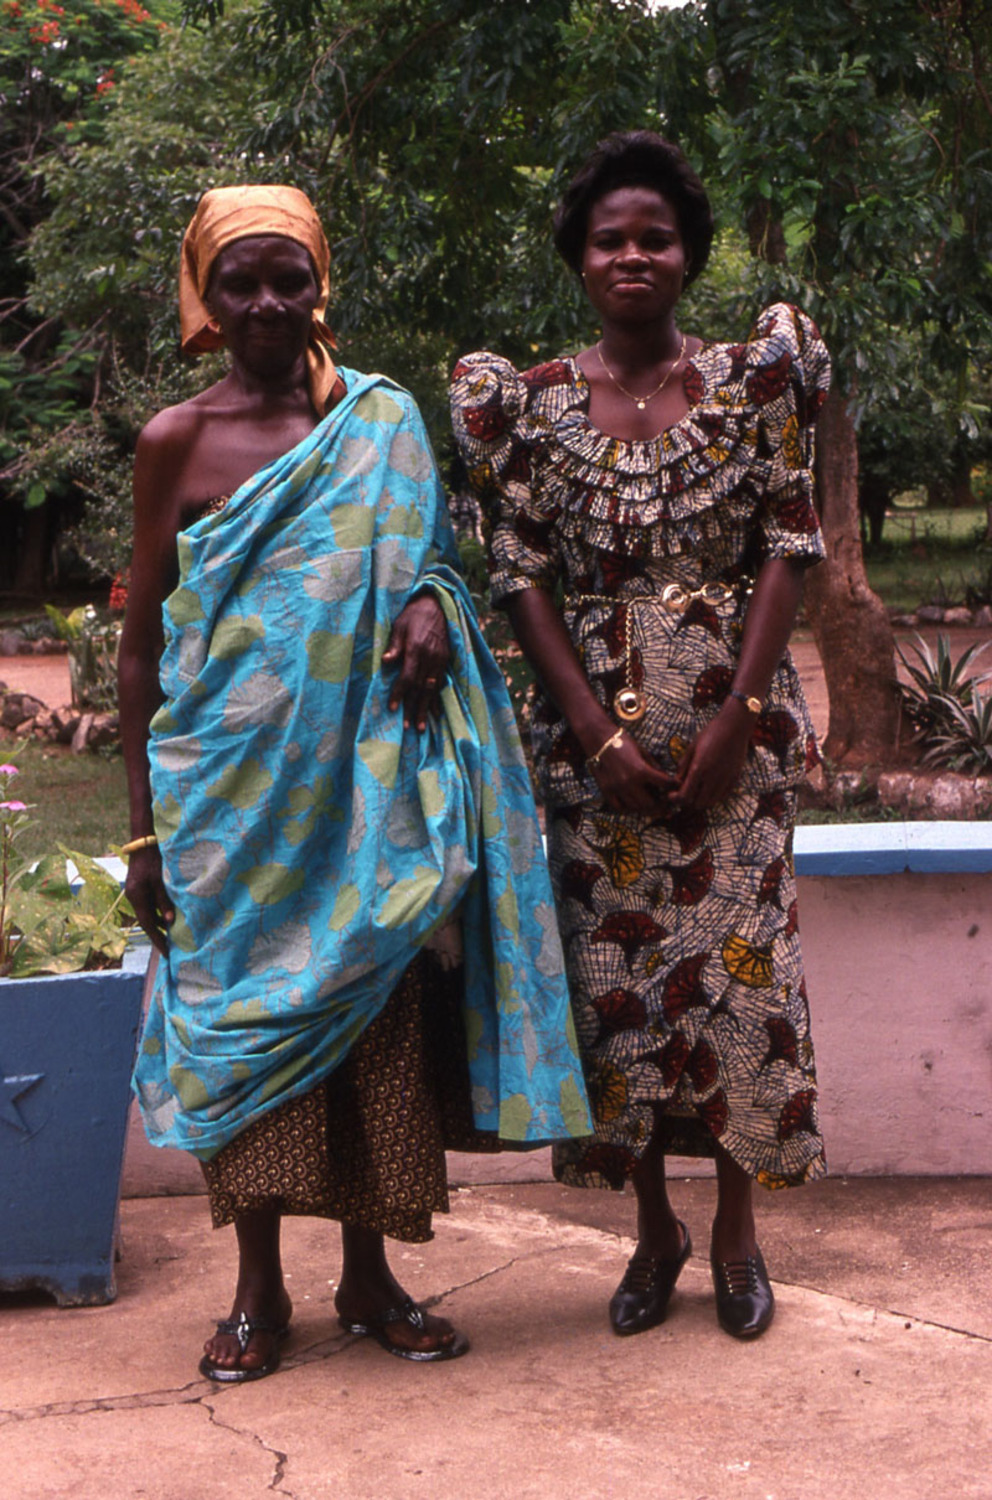 Cloth trader and daughter helper standing dressed up